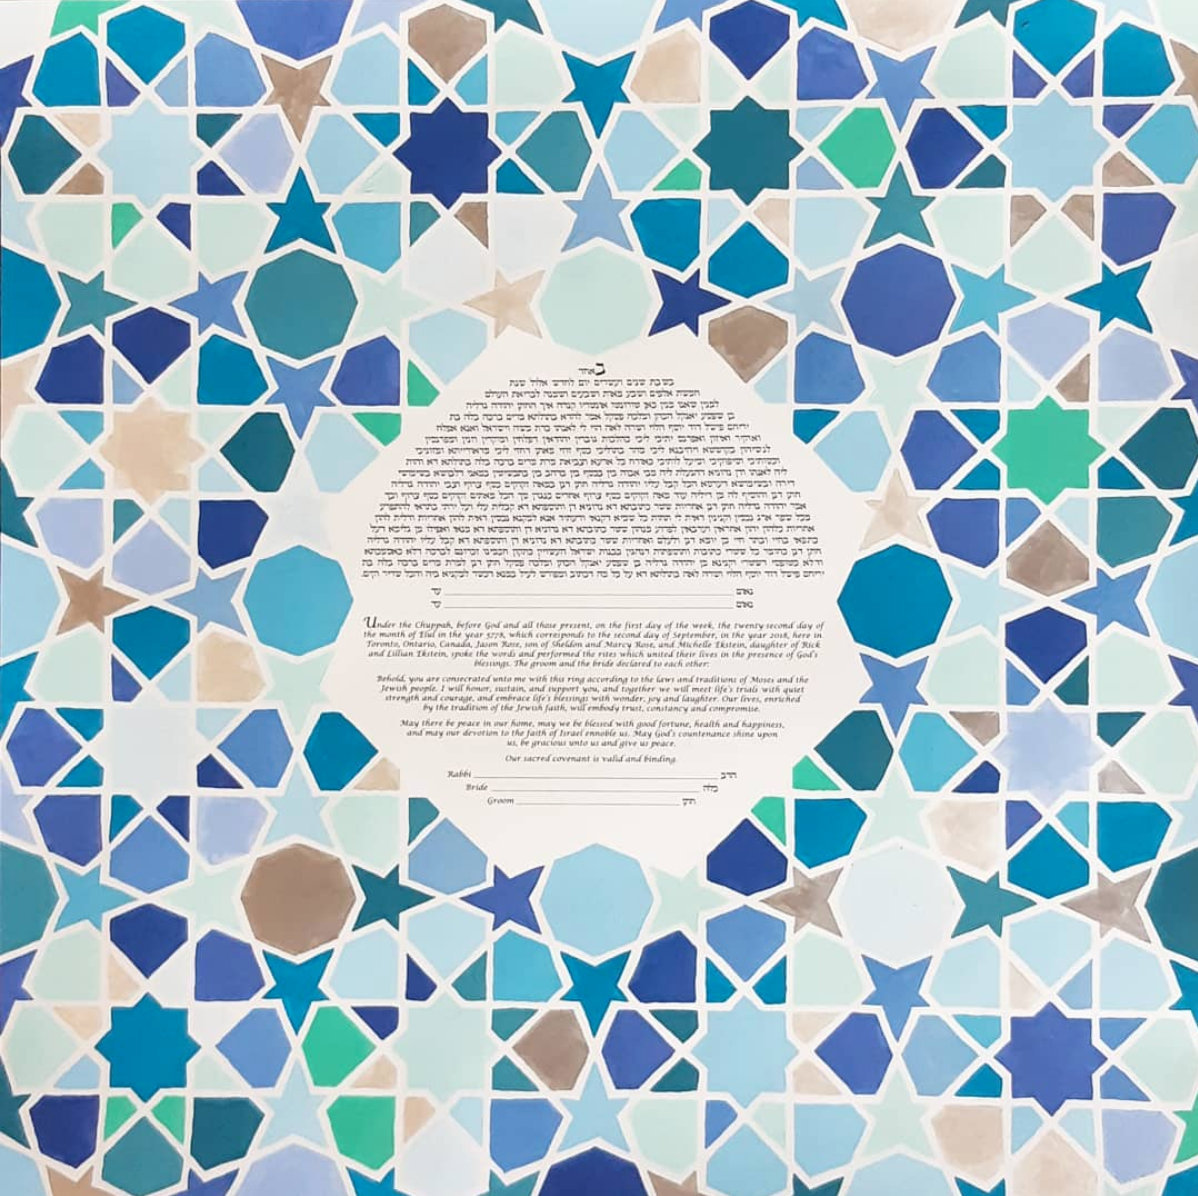 Blue and white geometric pattern_Bareket Kezwer.png